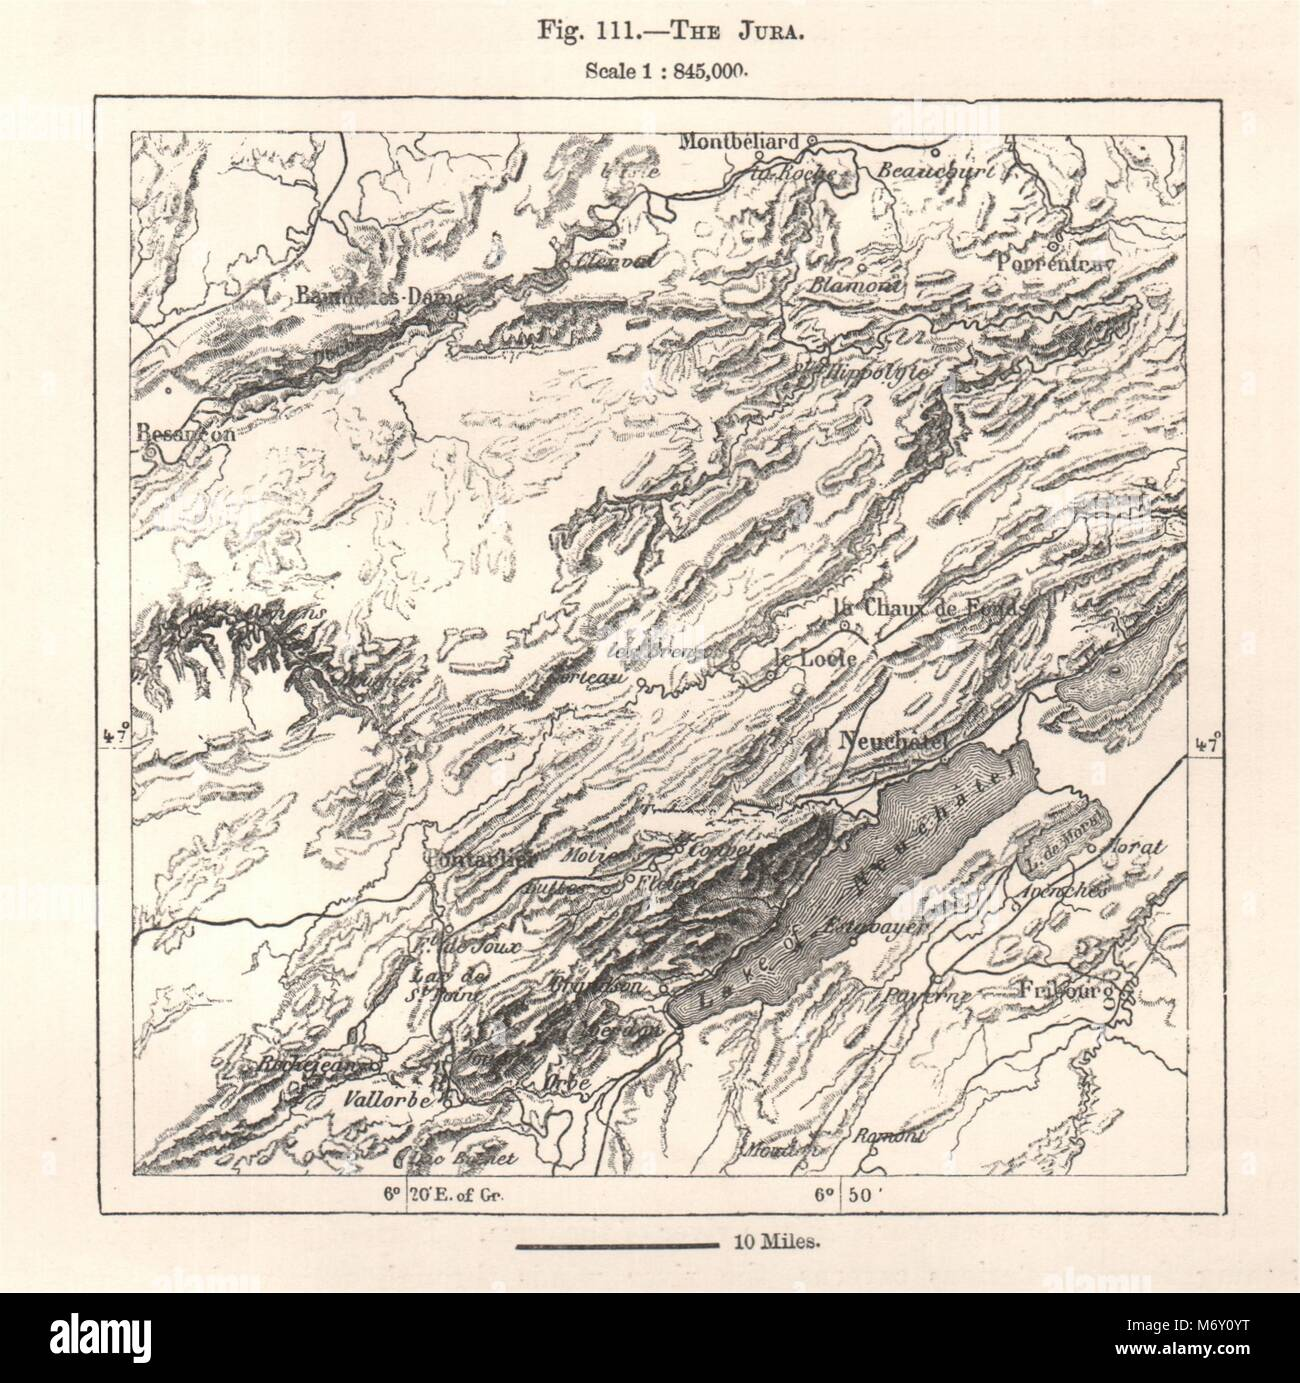 Map Of France Jura.The Jura France Switzerland Sketch Map 1885 Old Antique Plan Chart